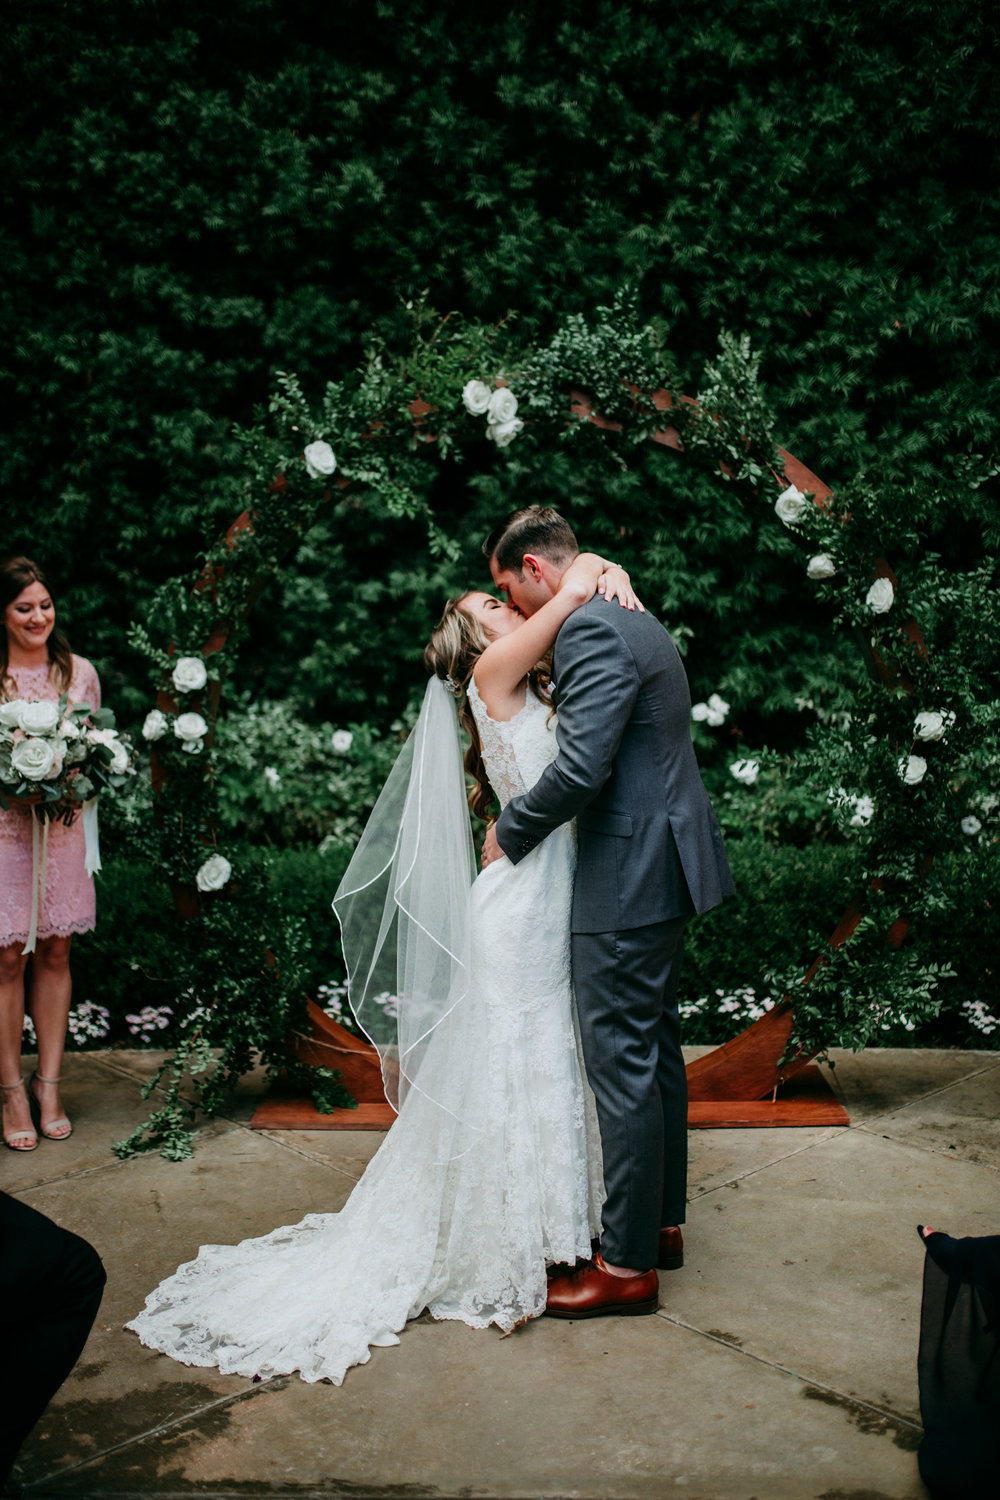 franciscan_garden_wedding-43.jpg